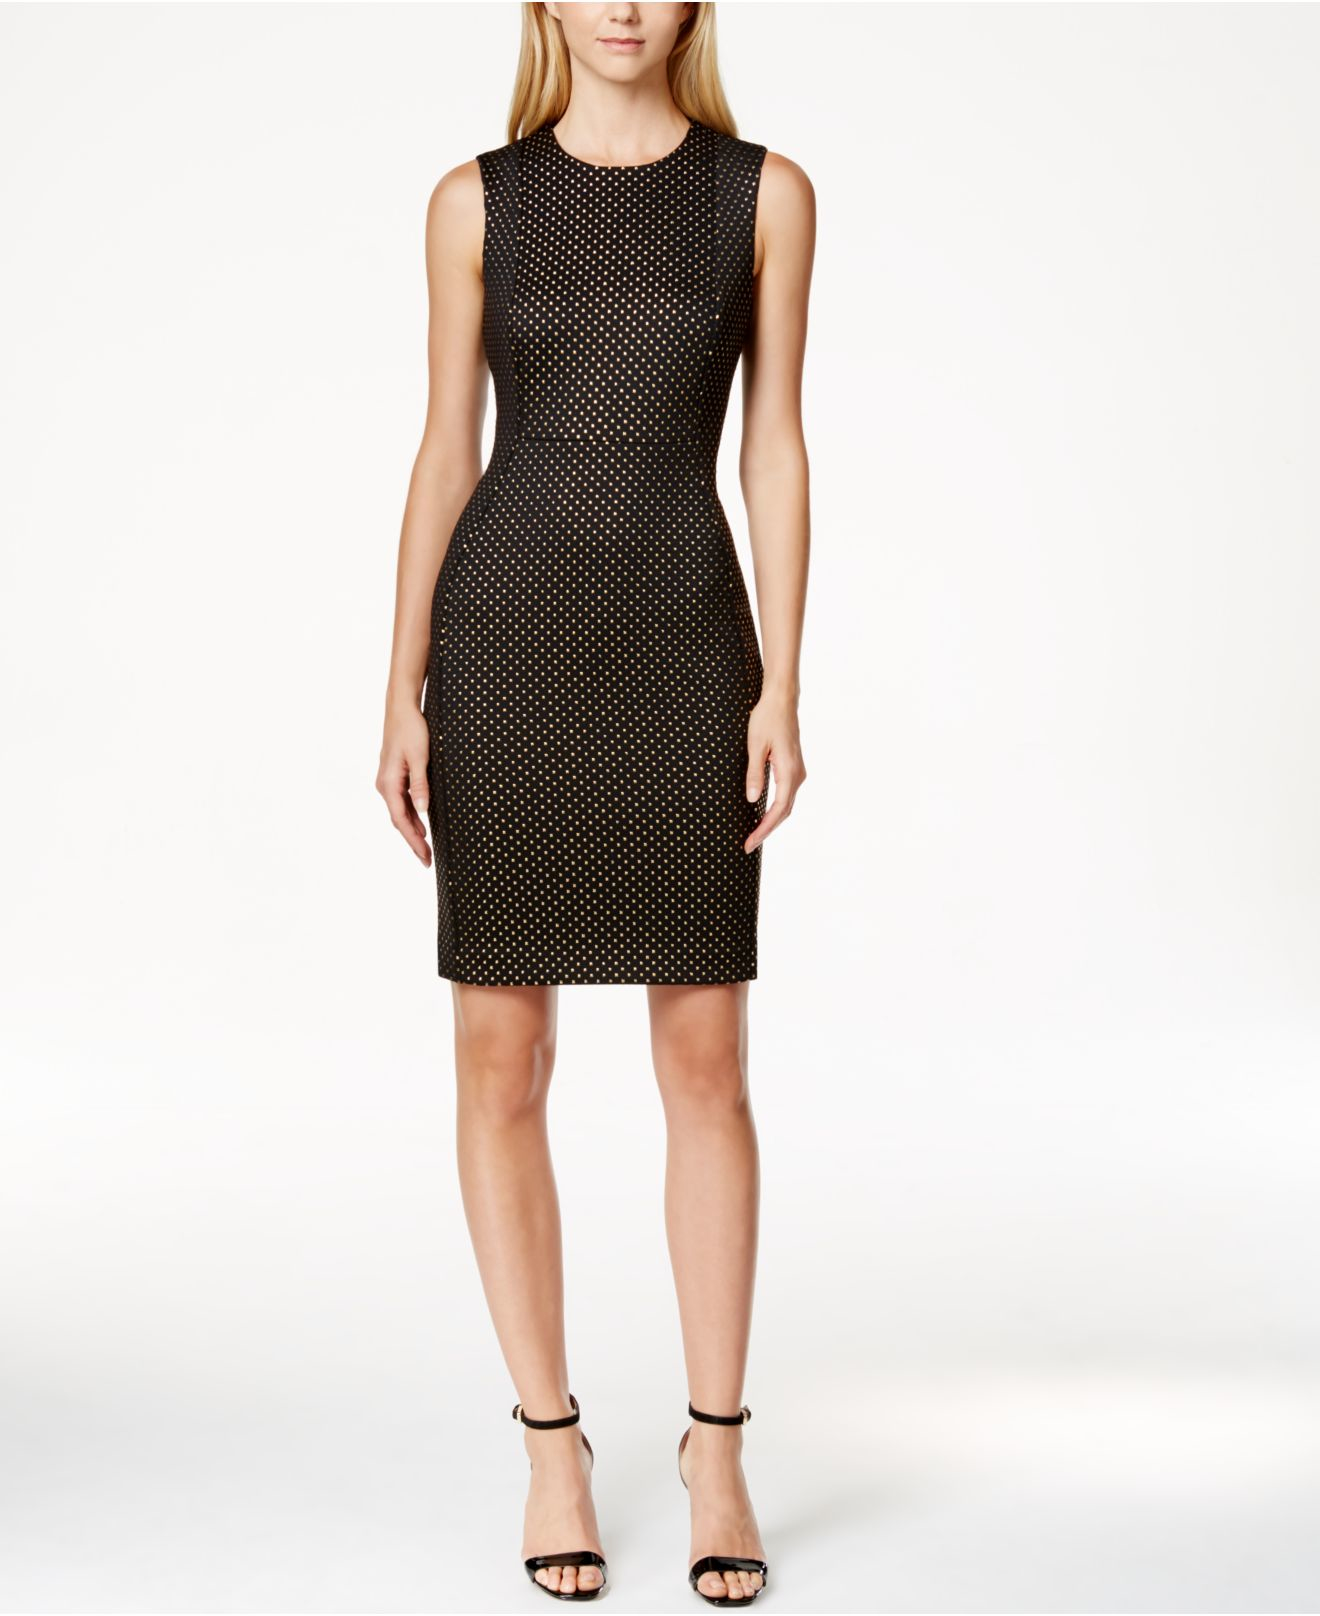 Lyst - Calvin Klein Petite Studded Sheath Dress In Black